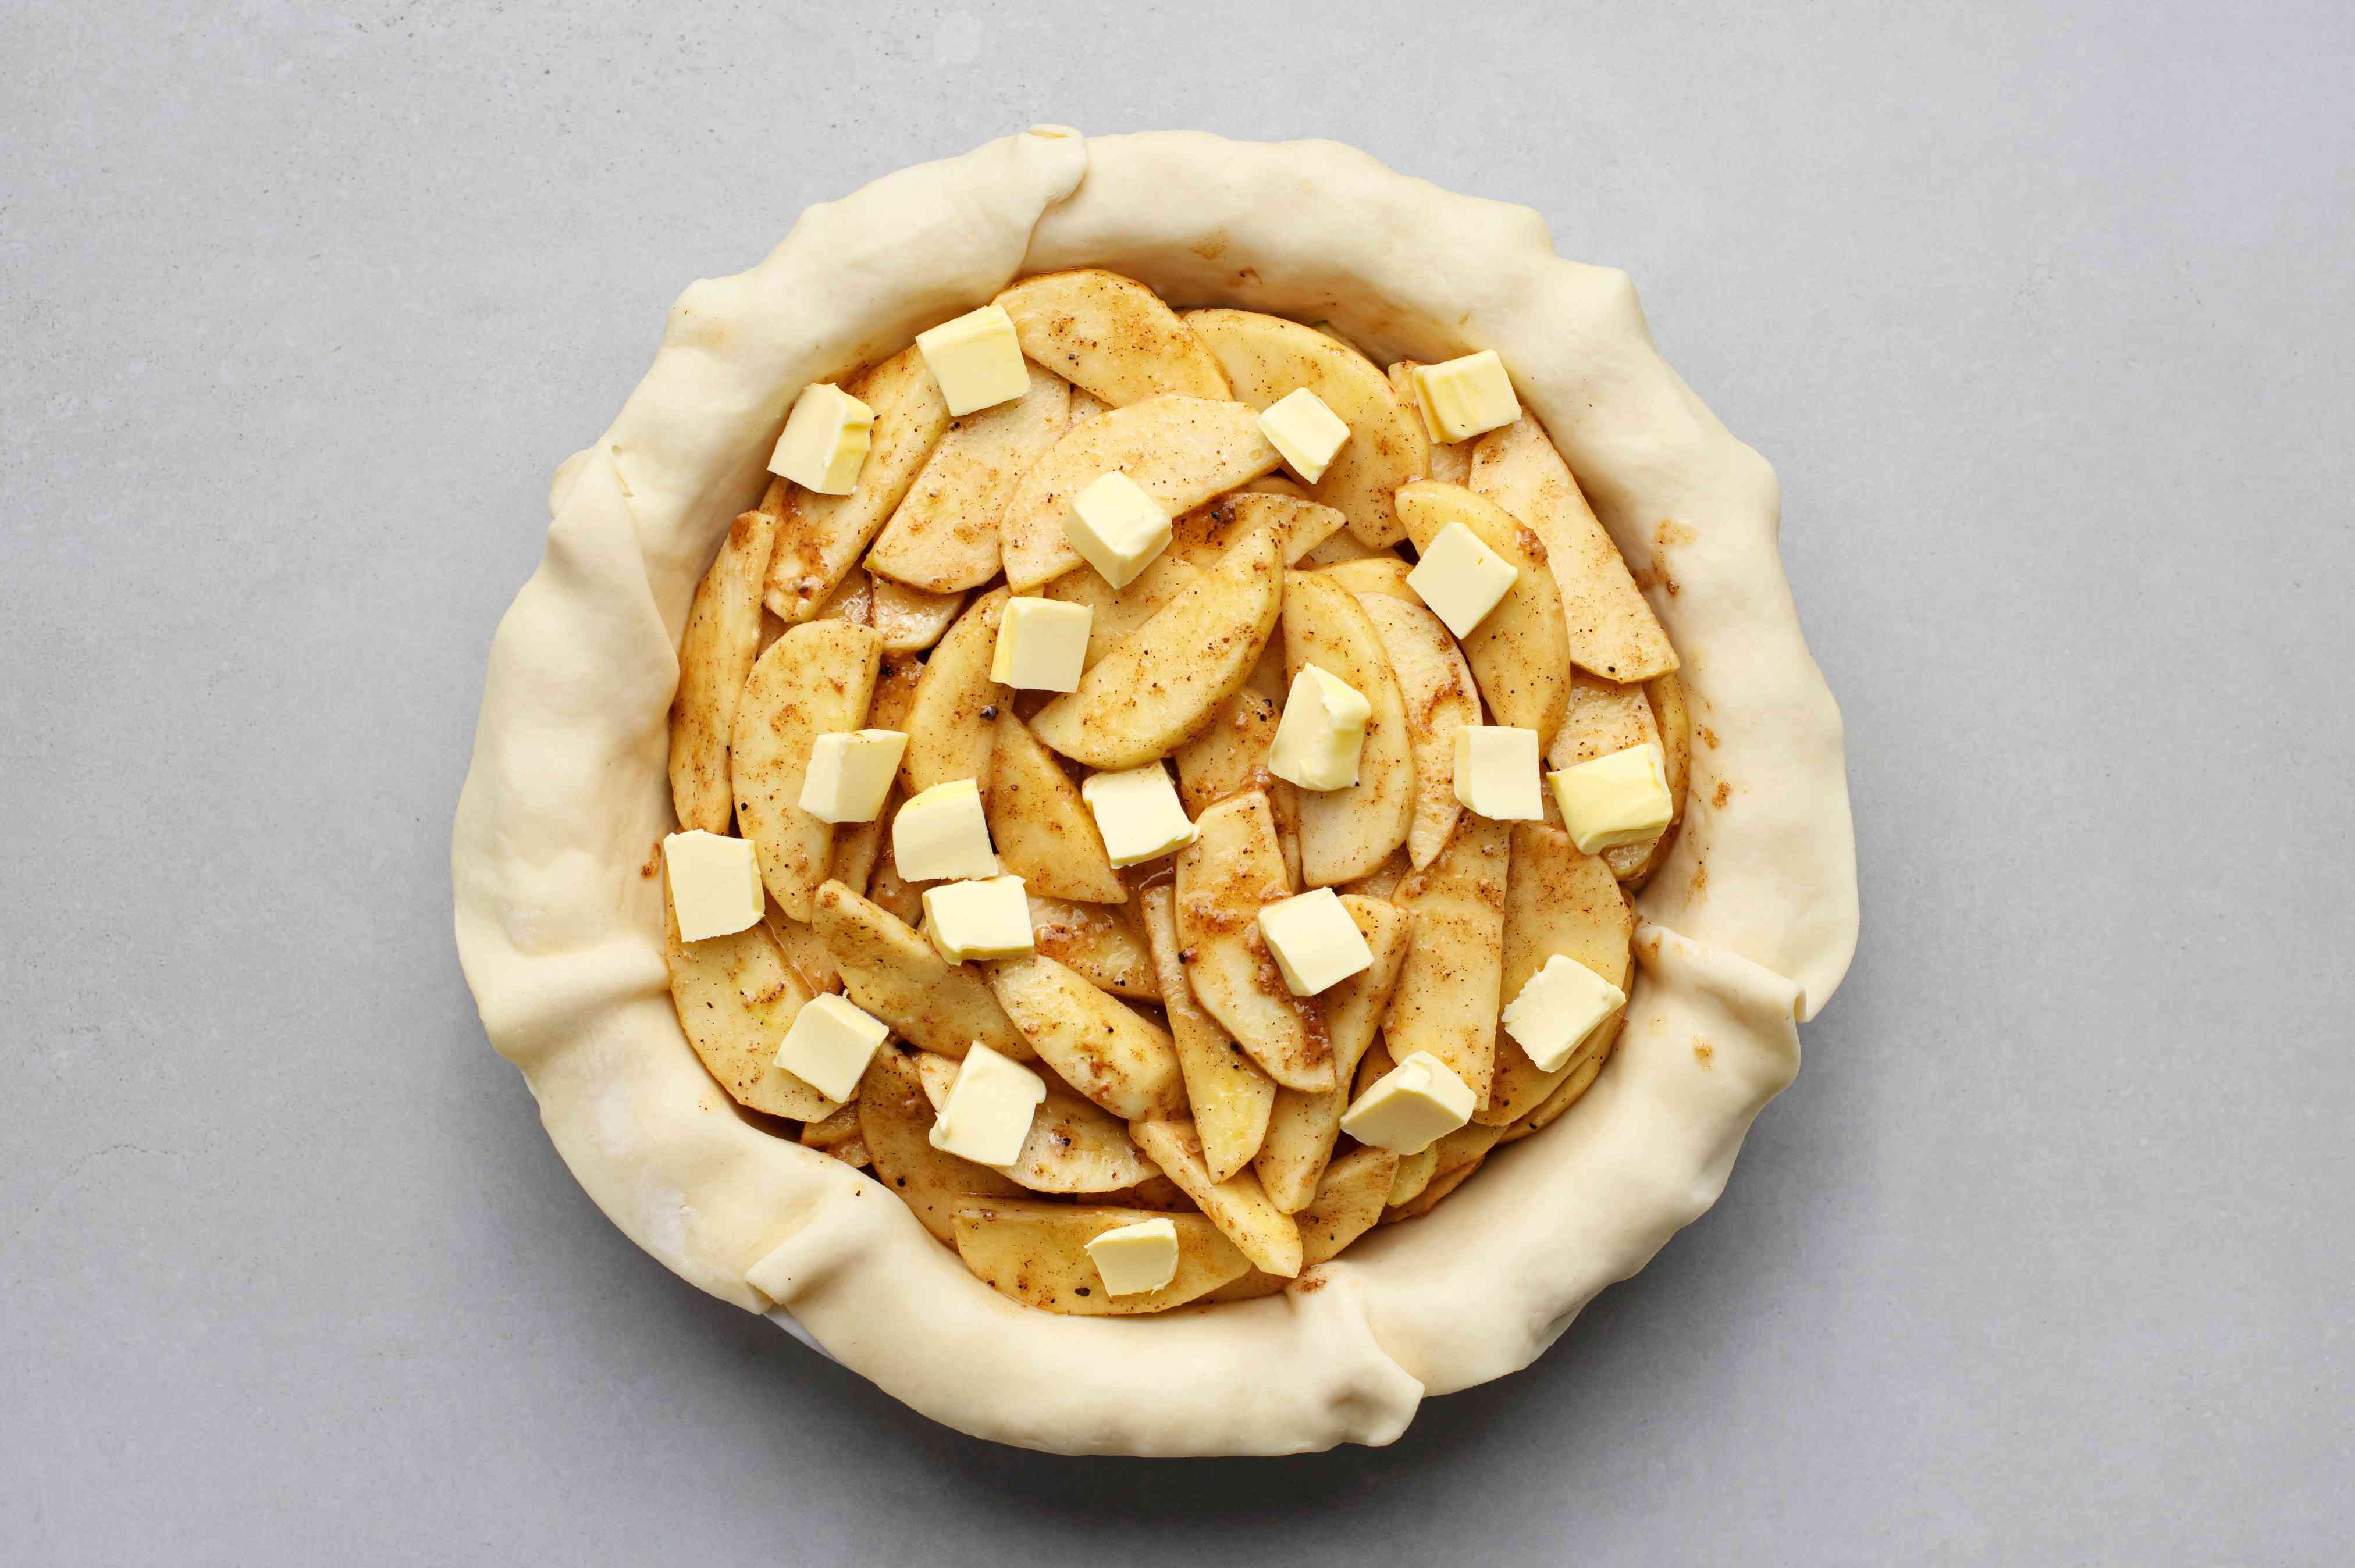 Pour the apple filling into the crust-lined pie pan and dot with butter